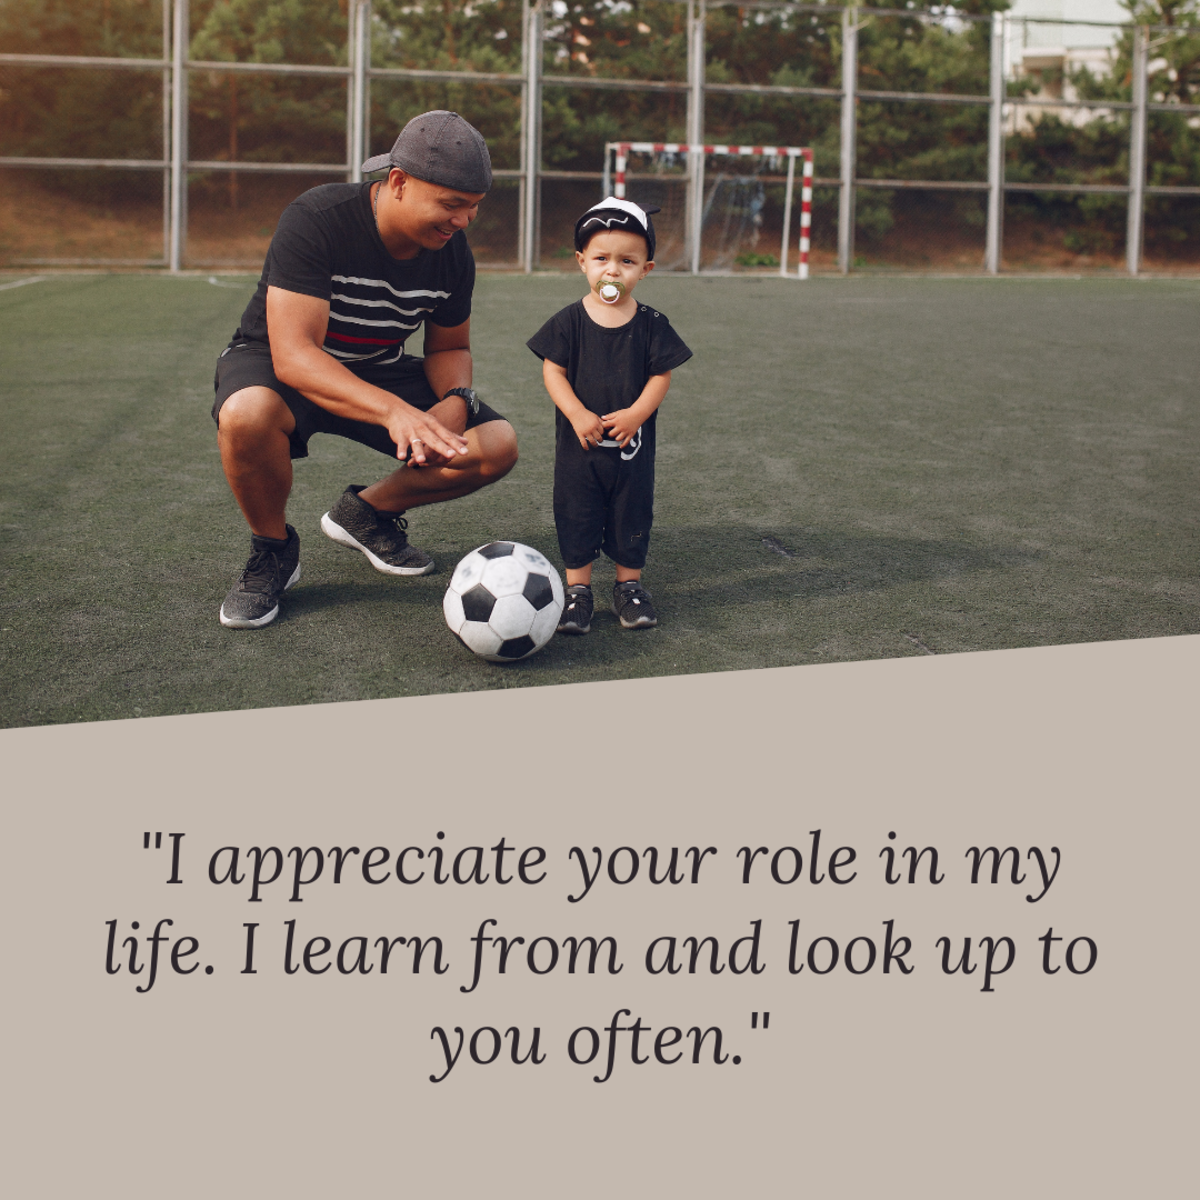 Show your stepfather some appreciation if he has taken on an important role in your life.